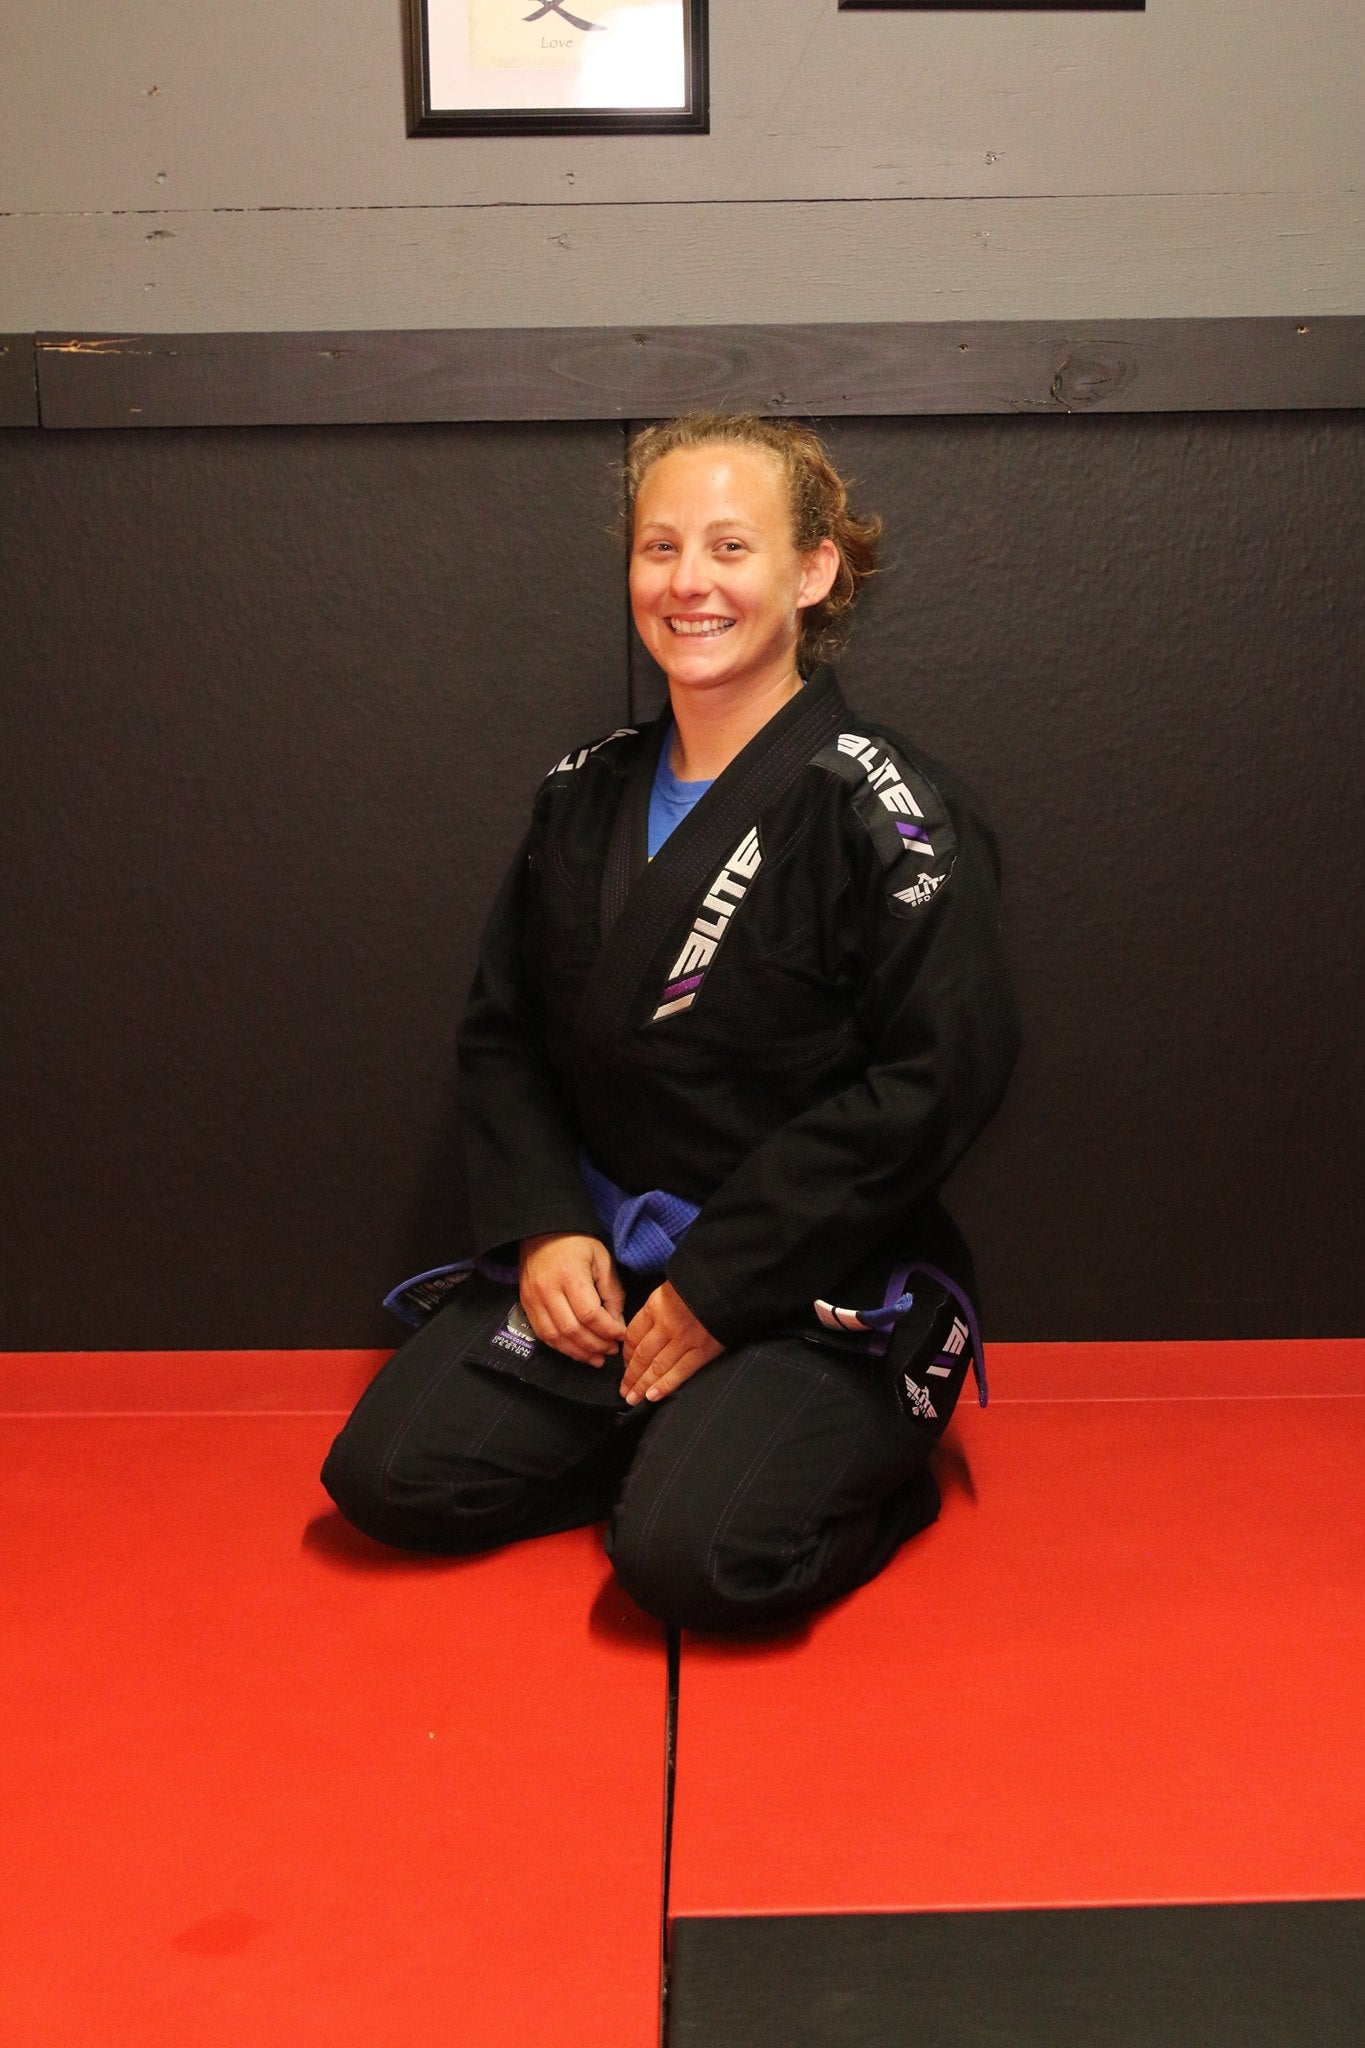 Elite Sports Team Elite Bjj Fighter Aimee Olds   Image4